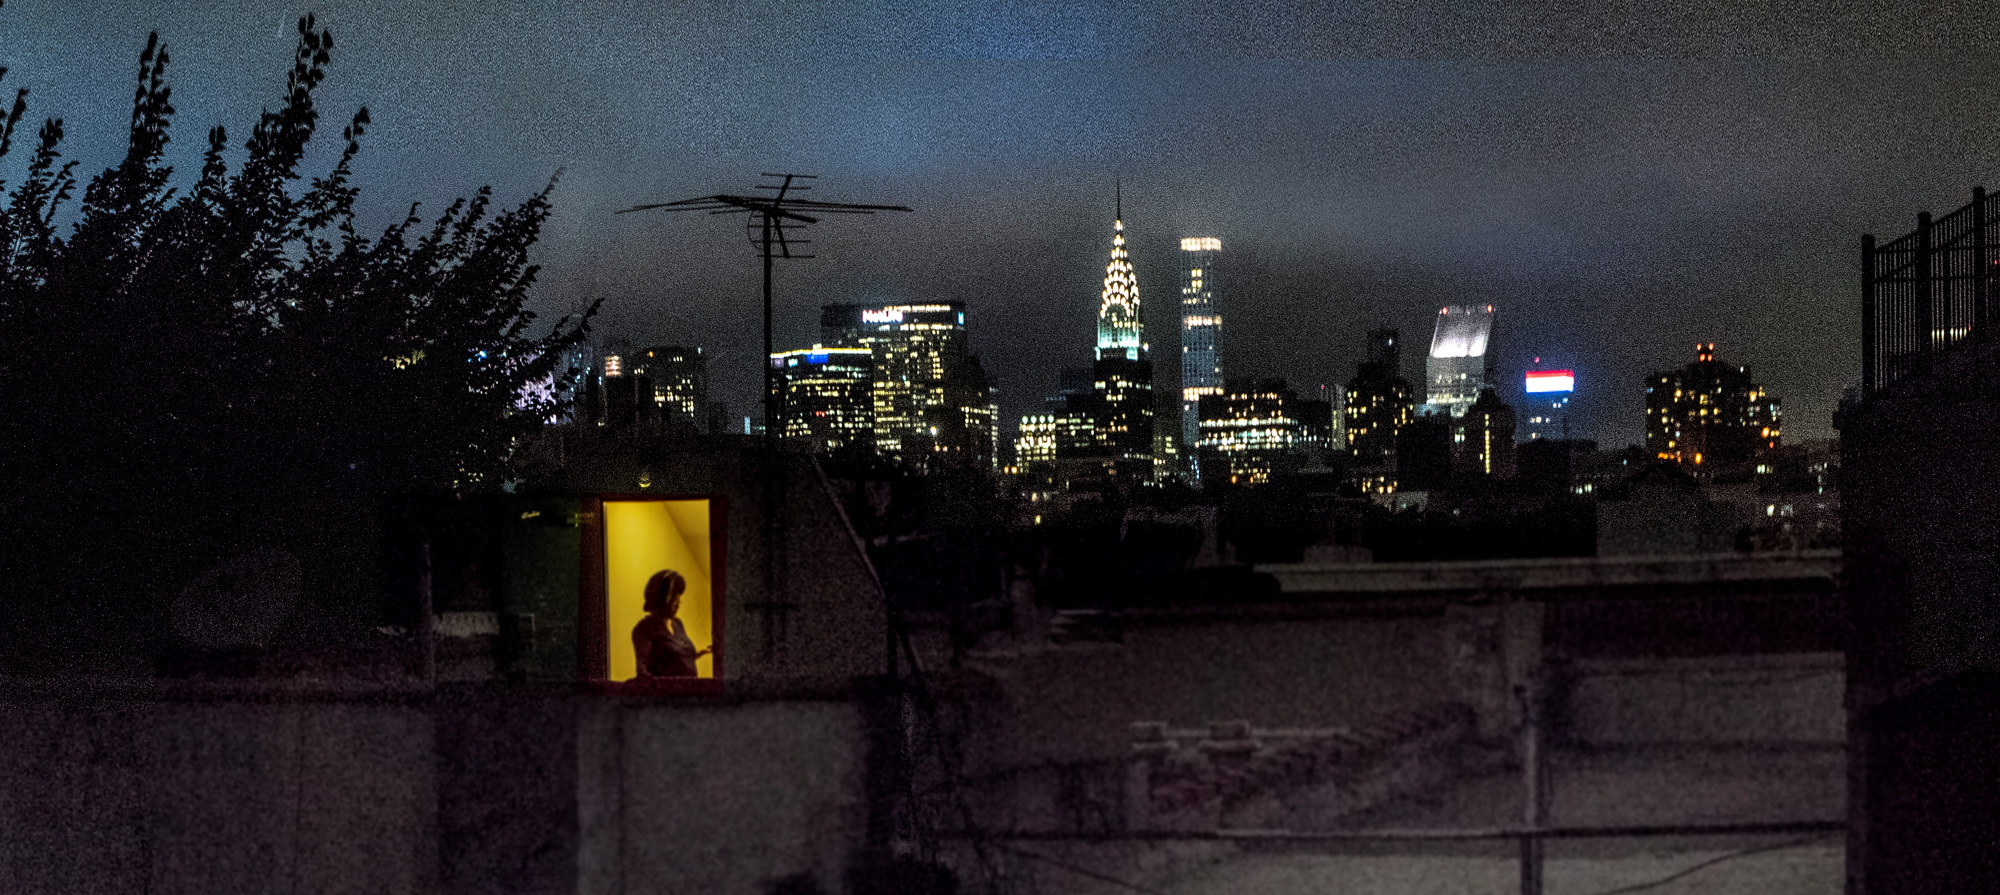 "Sally Davies, 2018. ""Rearview, From My Apartment on East 5th Street."" Inkjet print, 16 H x 20 W in. Museum of the City of New York. Gift of Sally Davies, 2019. 2019.9.12"